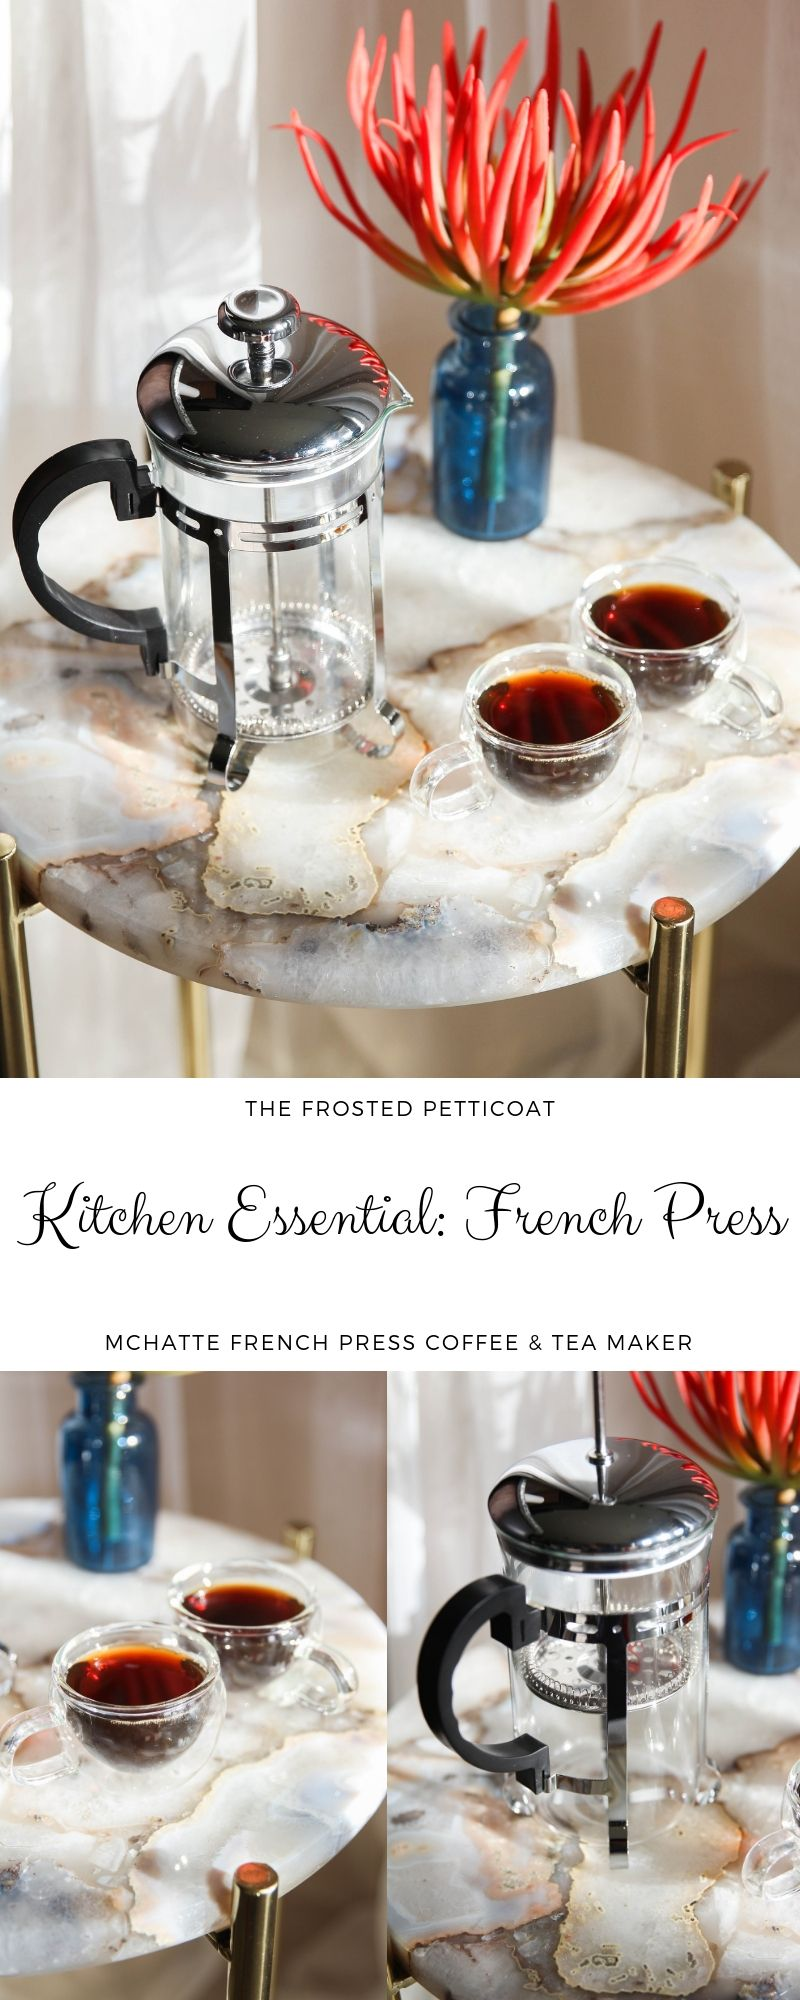 Amazon Kitchen Essentials: In Love With My New MCHATTE French Press Coffee & Tea